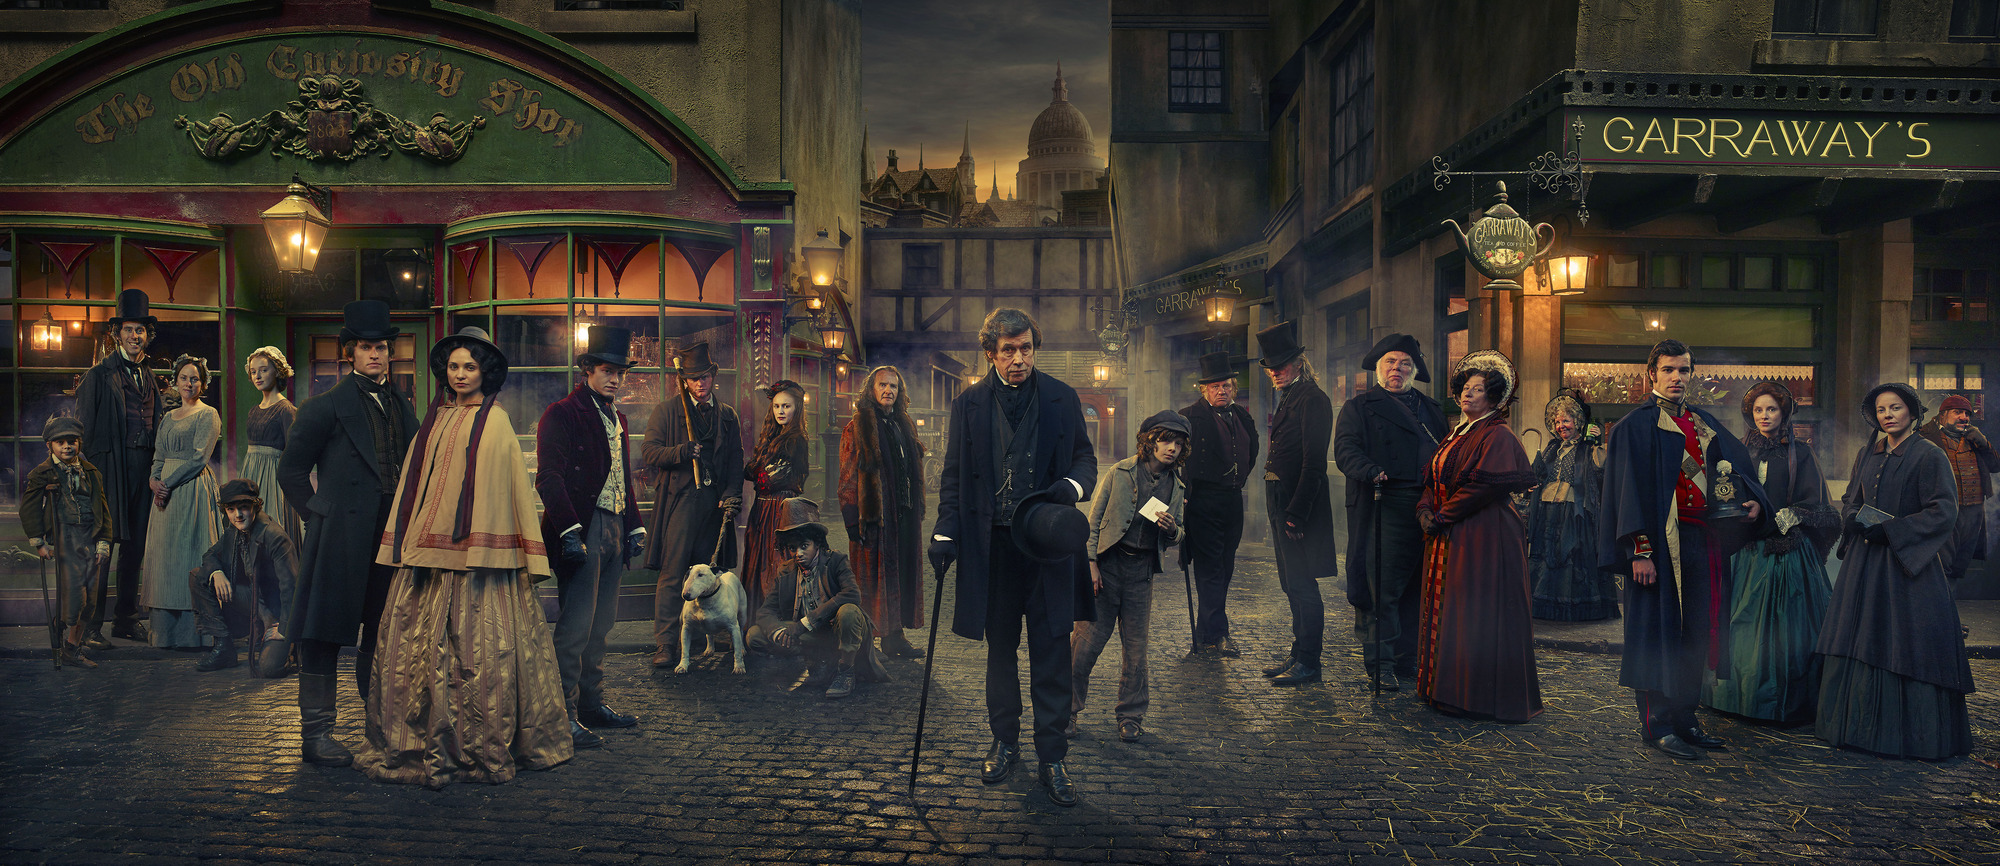 17 amazing facts about the groundbreaking BBC series Dickensian